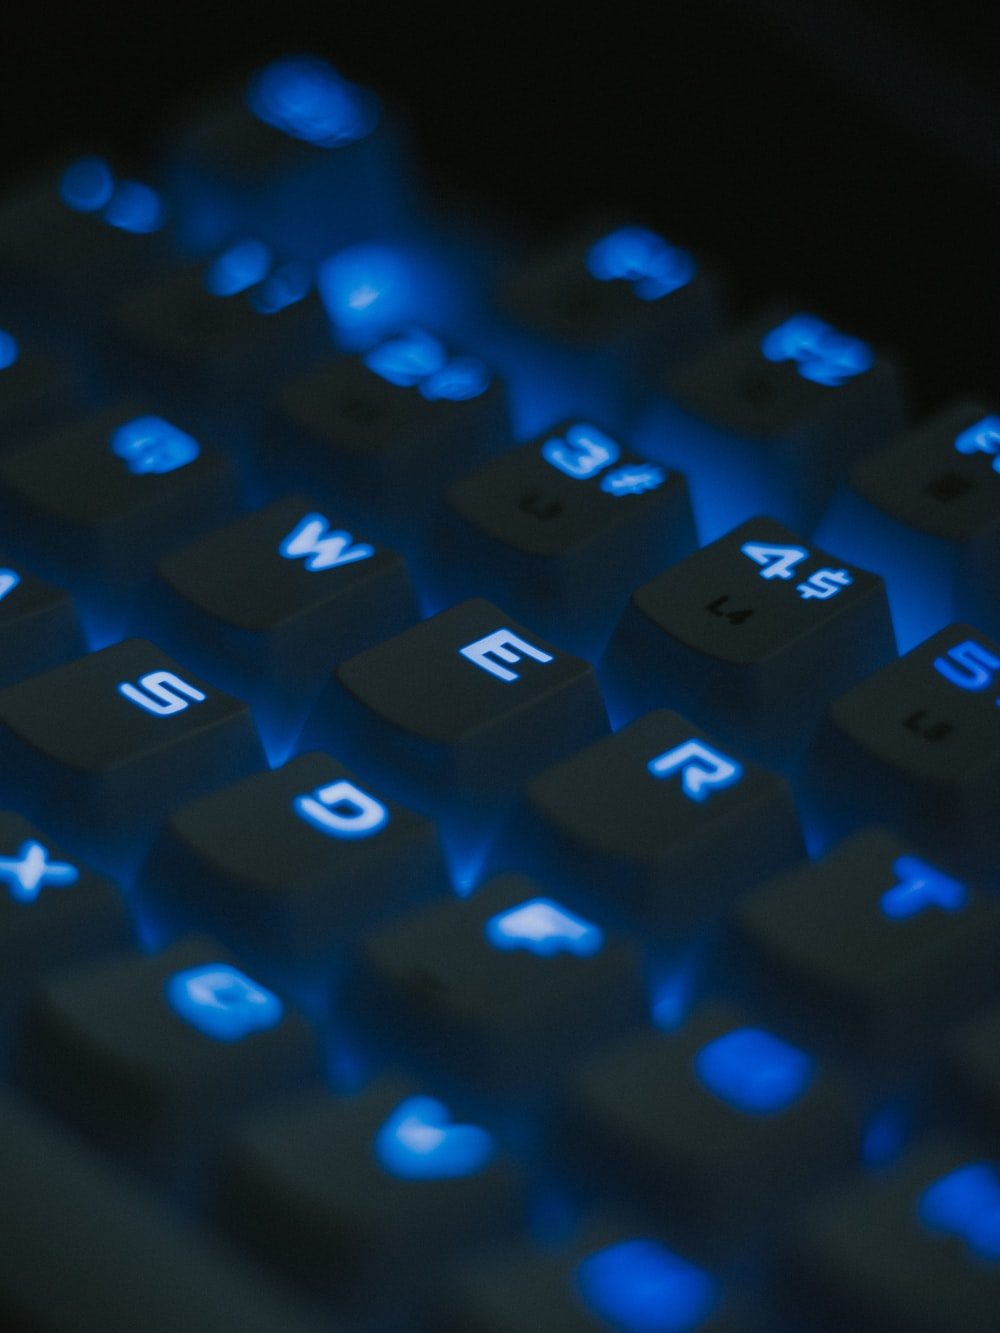 blue and black computer keyboard